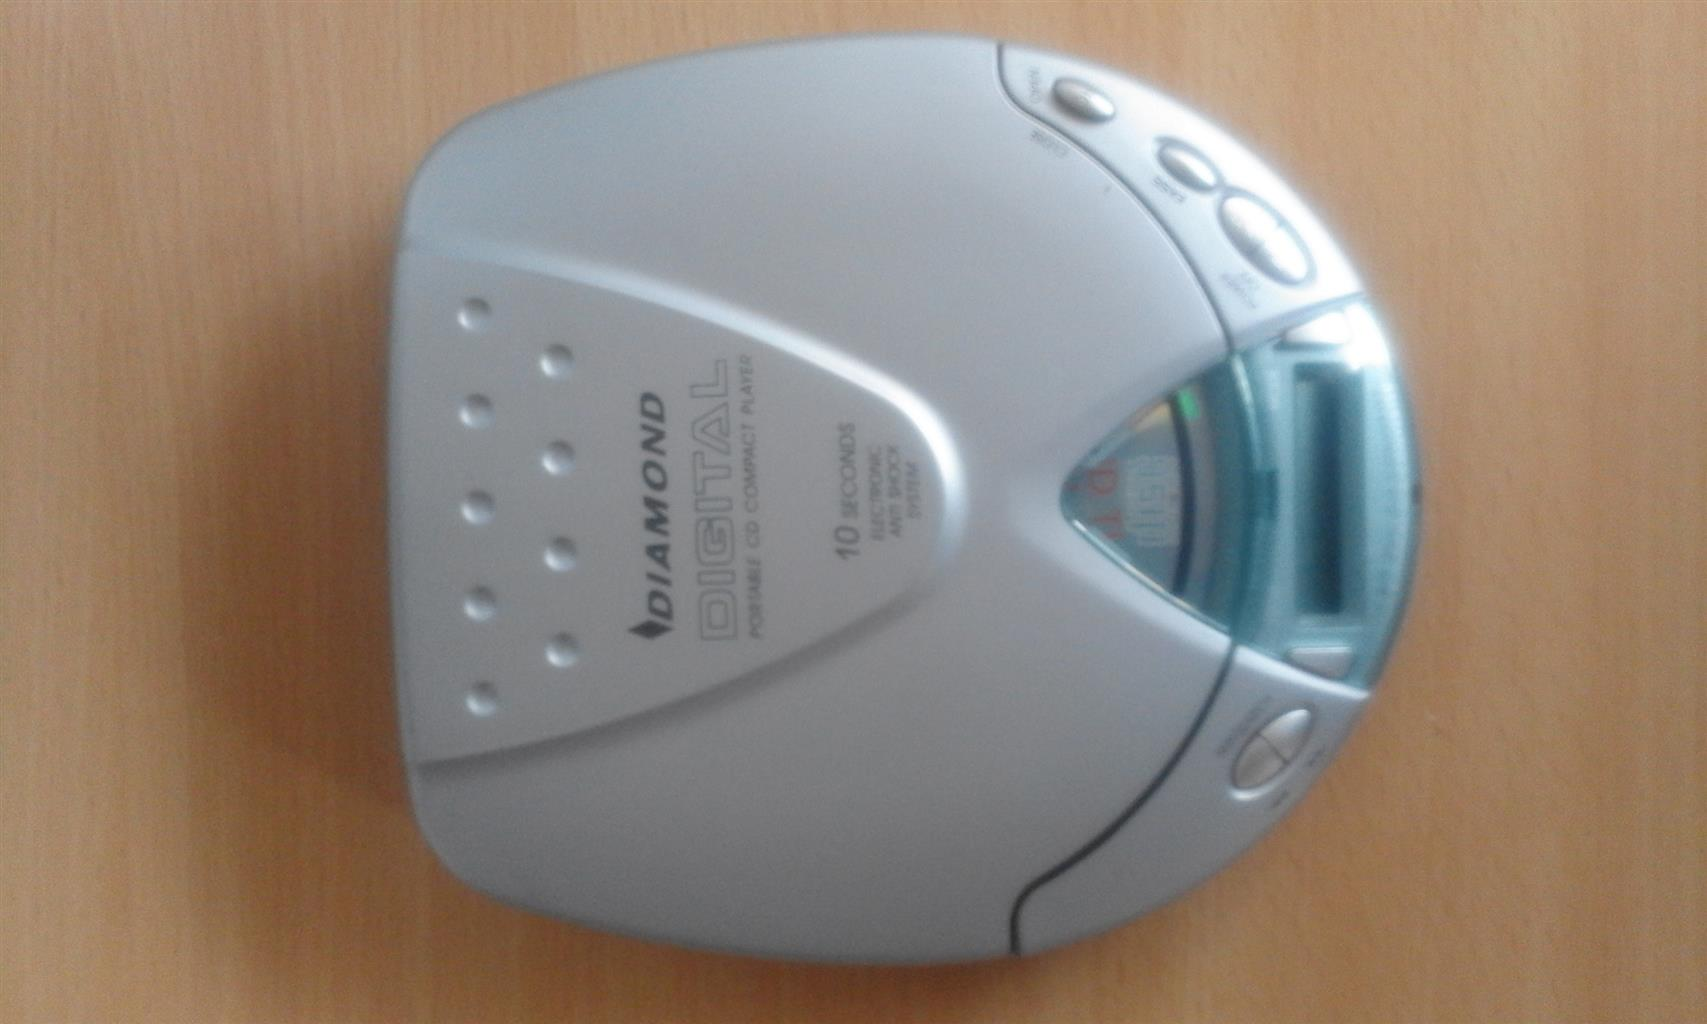 Discman with charger,earphones, battery compartment.